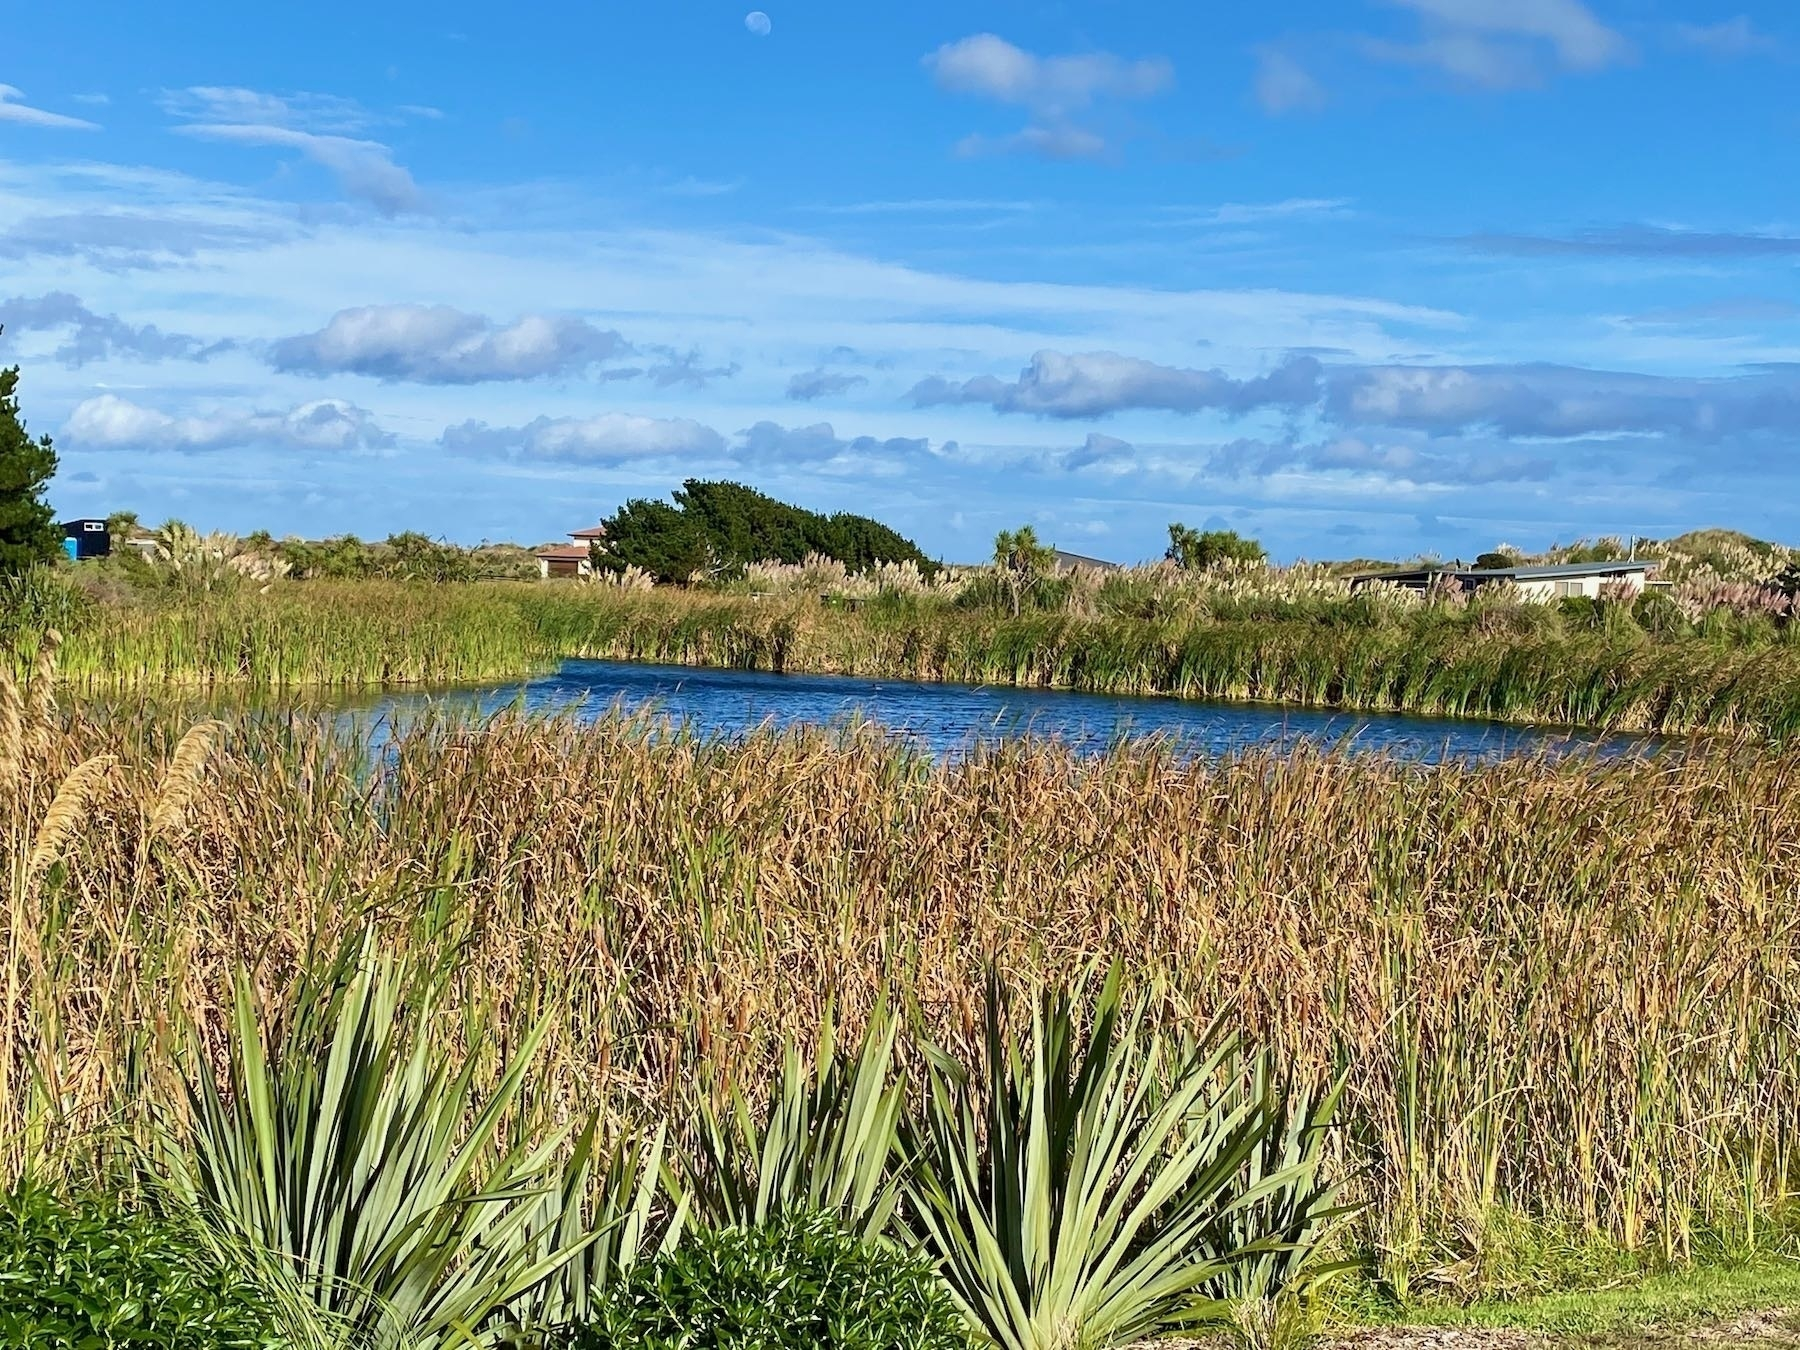 Blue lake surrounded by rushes.